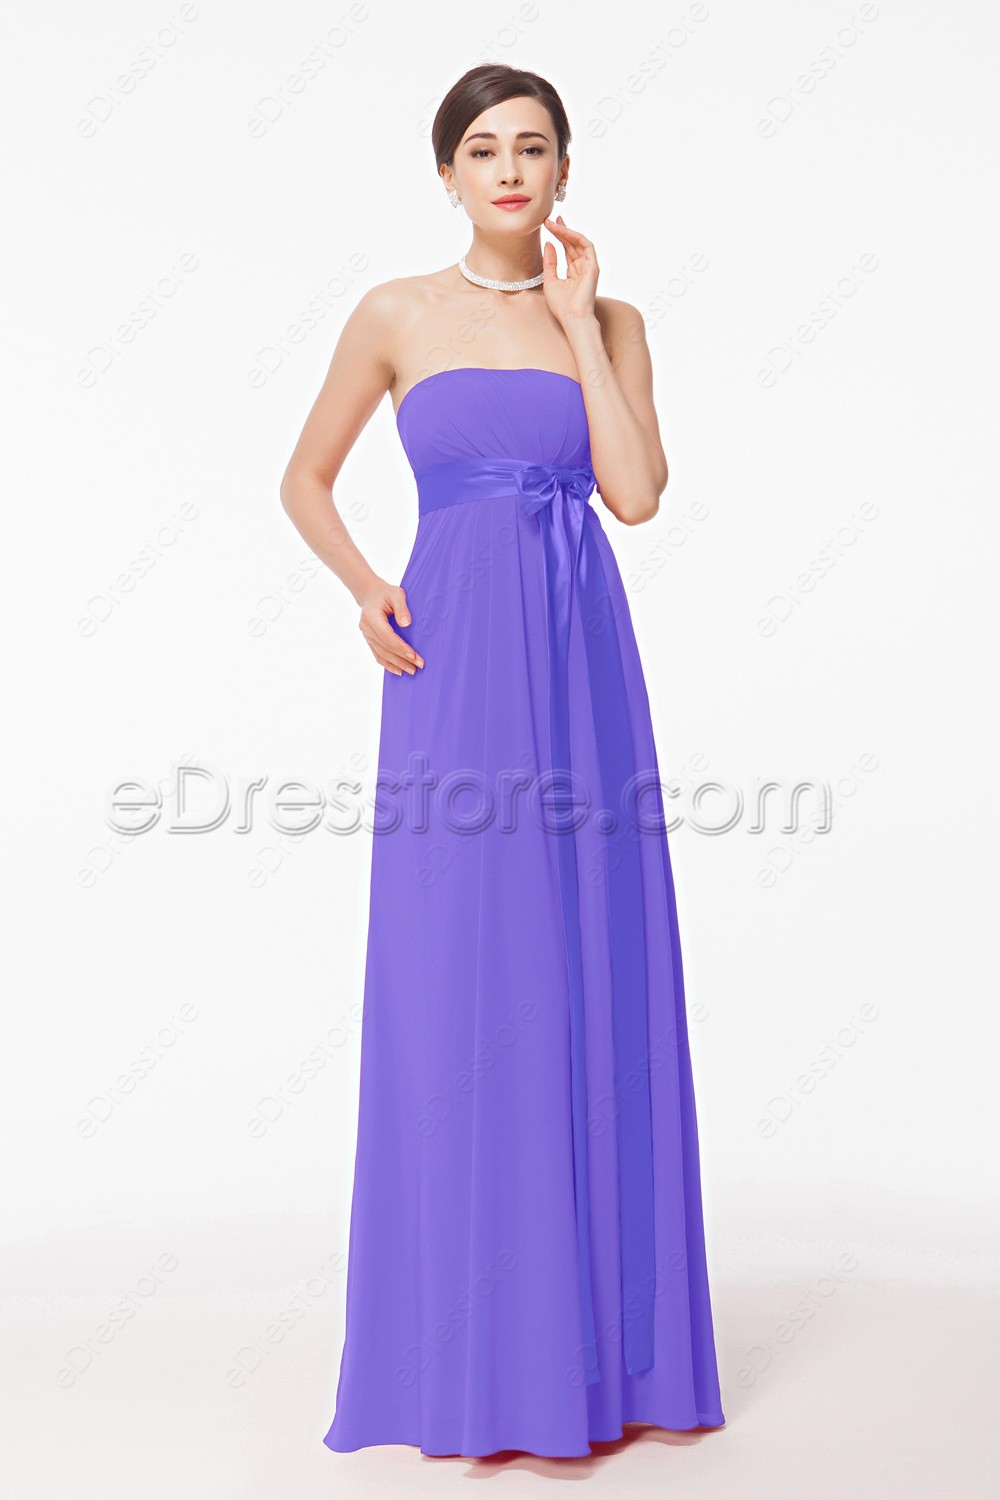 lavender long maternity bridesmaid dresses for pregnant